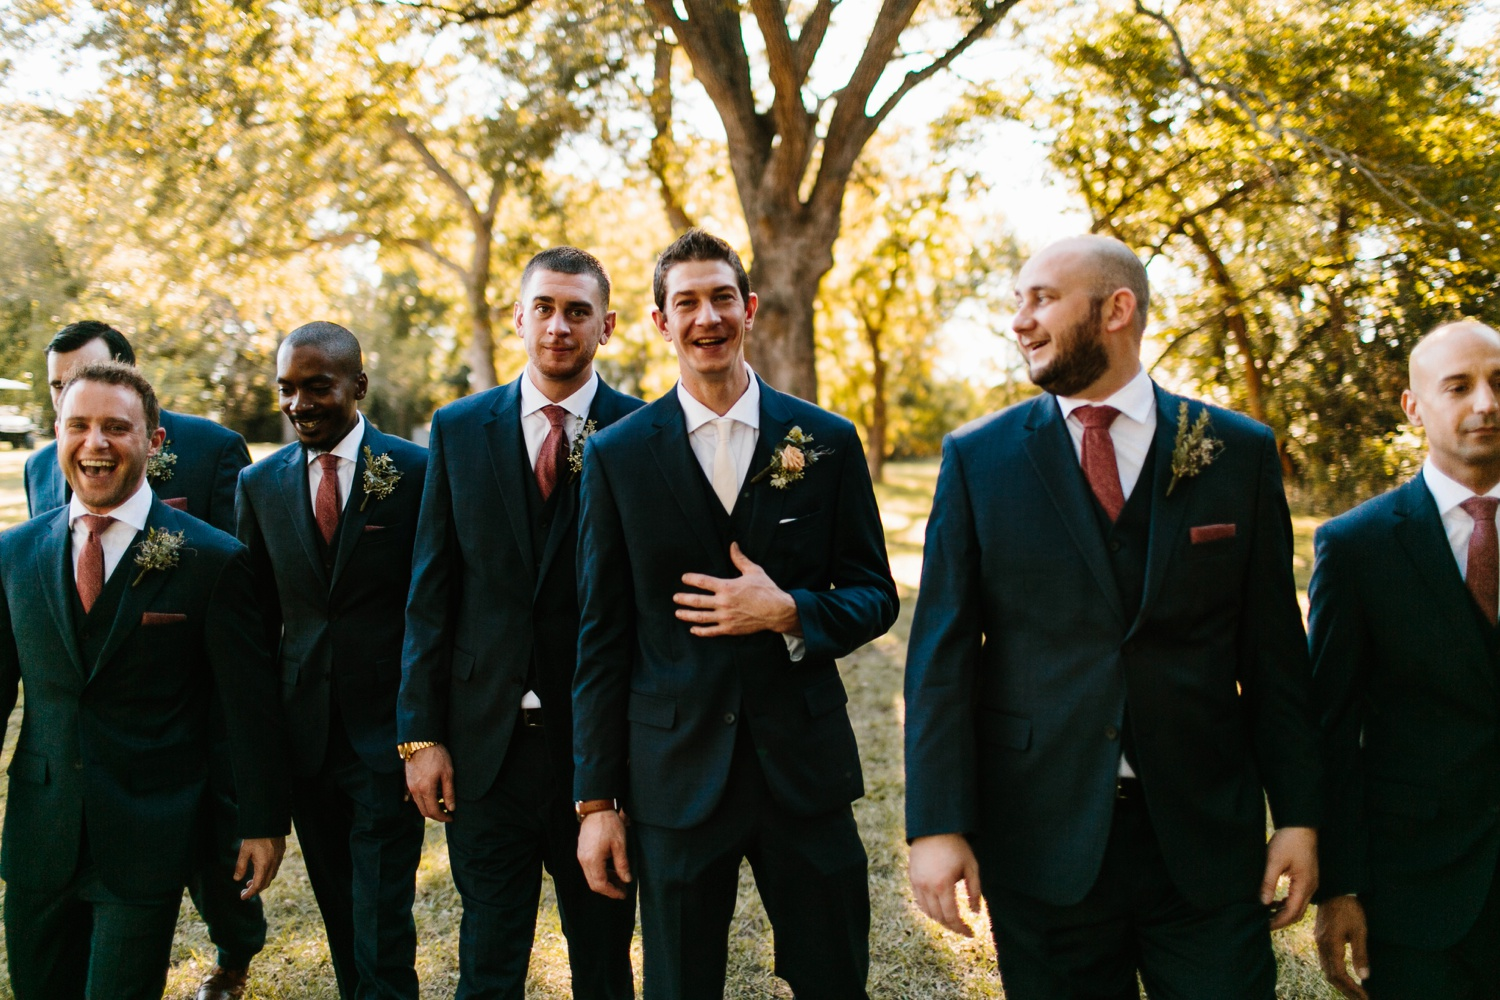 Erica + Henry | a bohemian inspired wedding at Chandlers Gardens in Salina, TX by North Texas Wedding Photographer Rachel Meagan Photography 046